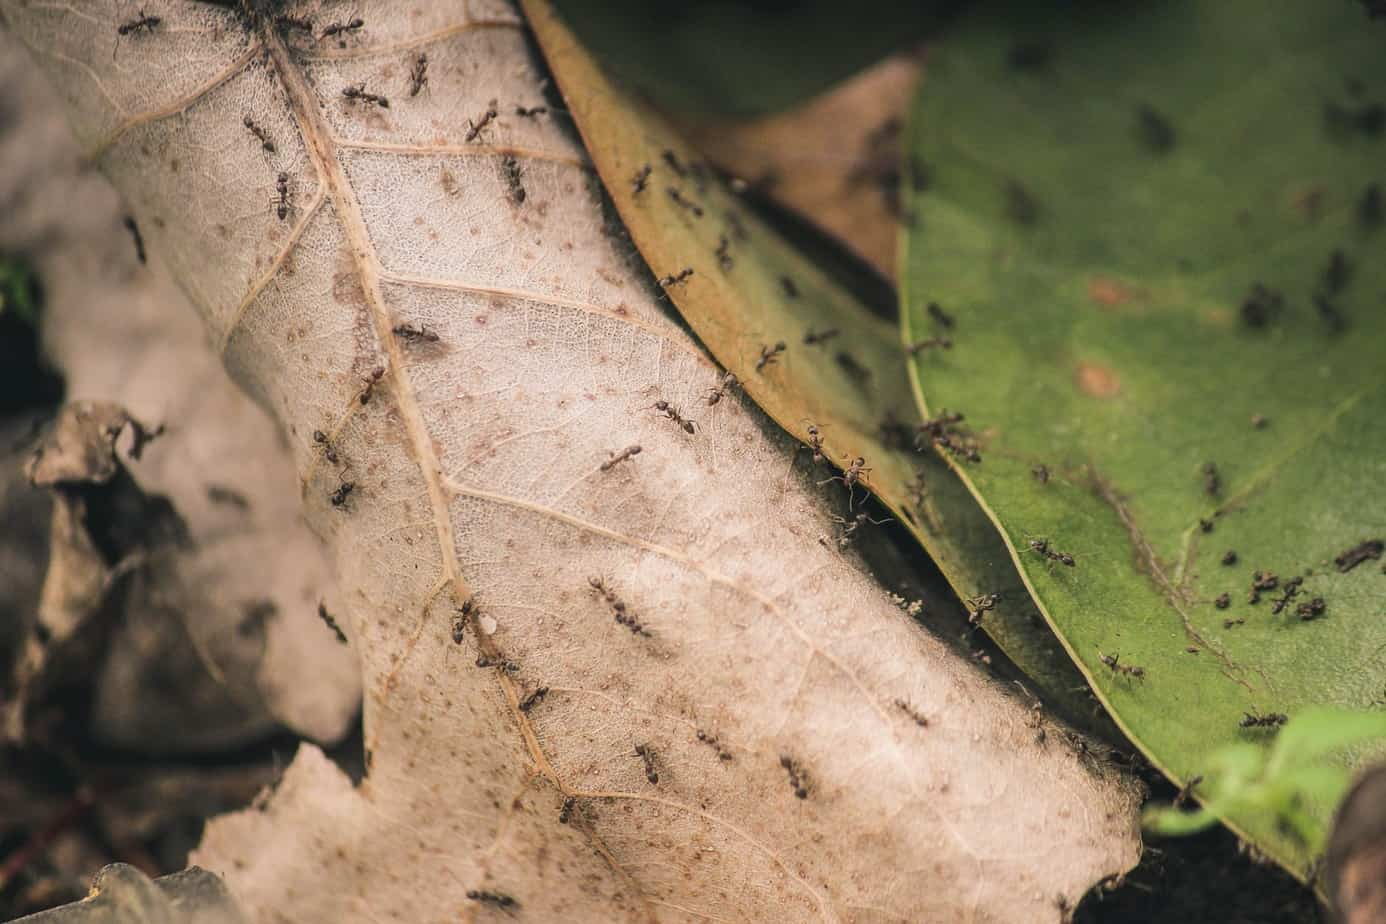 ants on the leaf